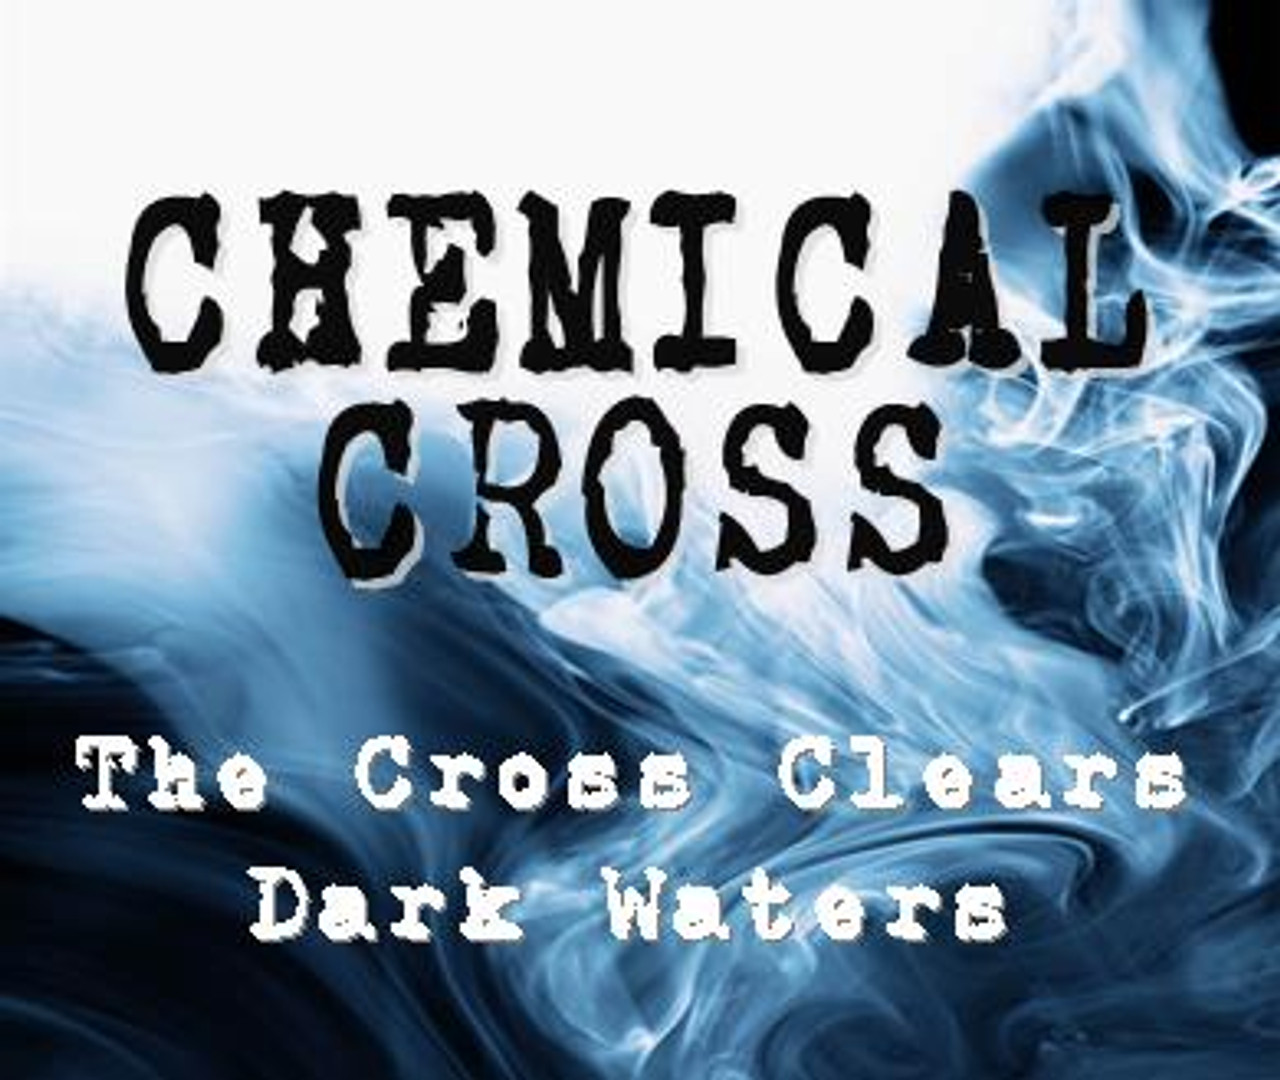 The New and Improved Chemical Cross Magic Trick